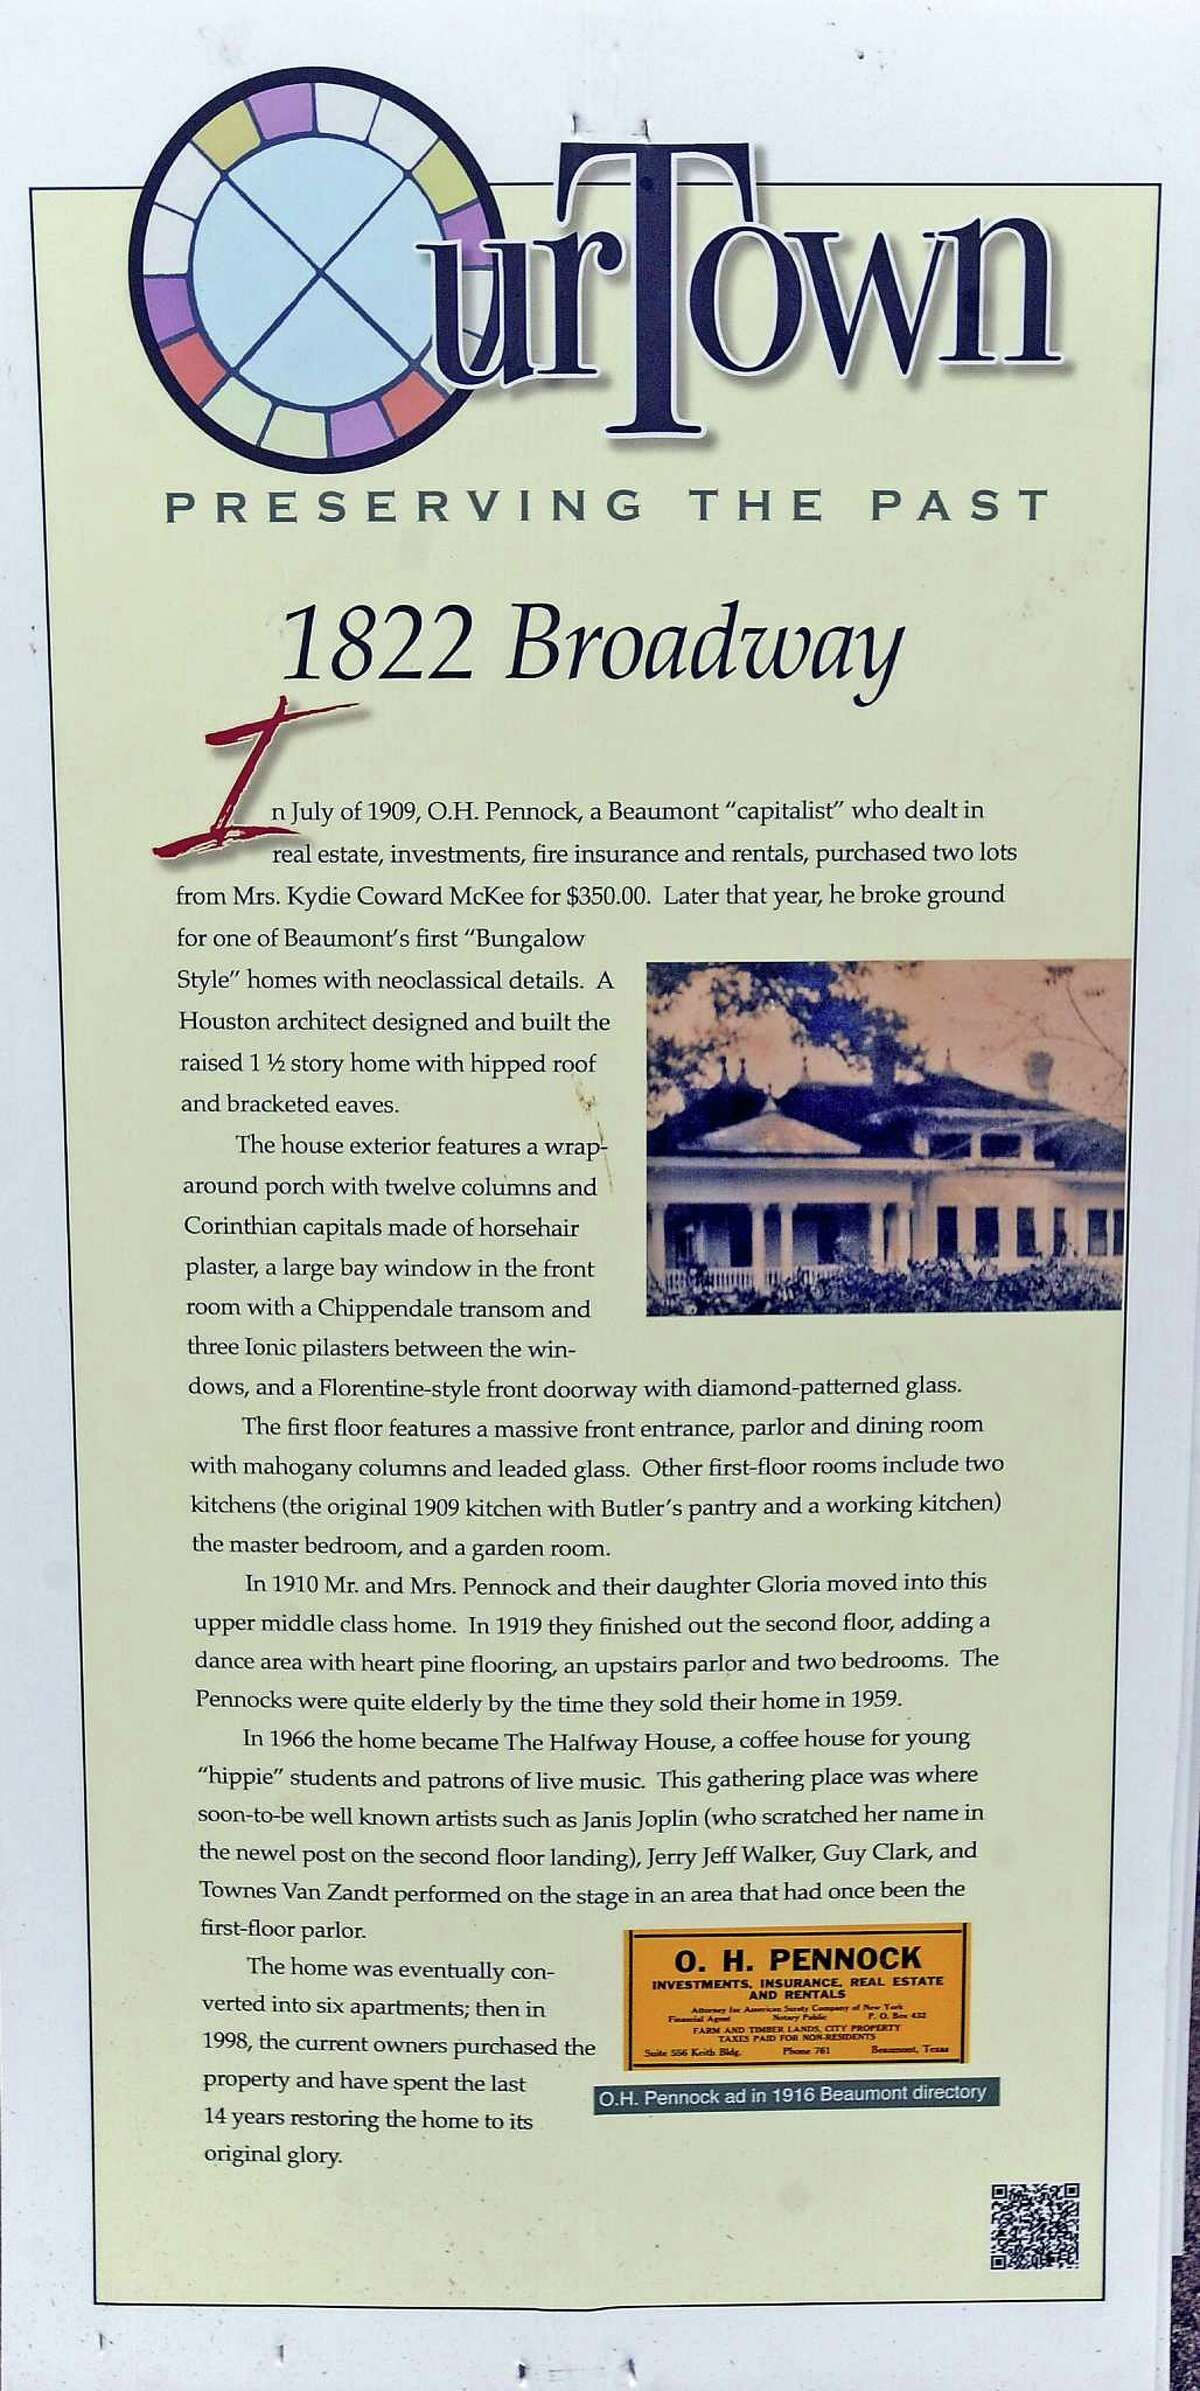 1822 BROADWAY In July of 1909, O.H. Pennock, a Beaumont